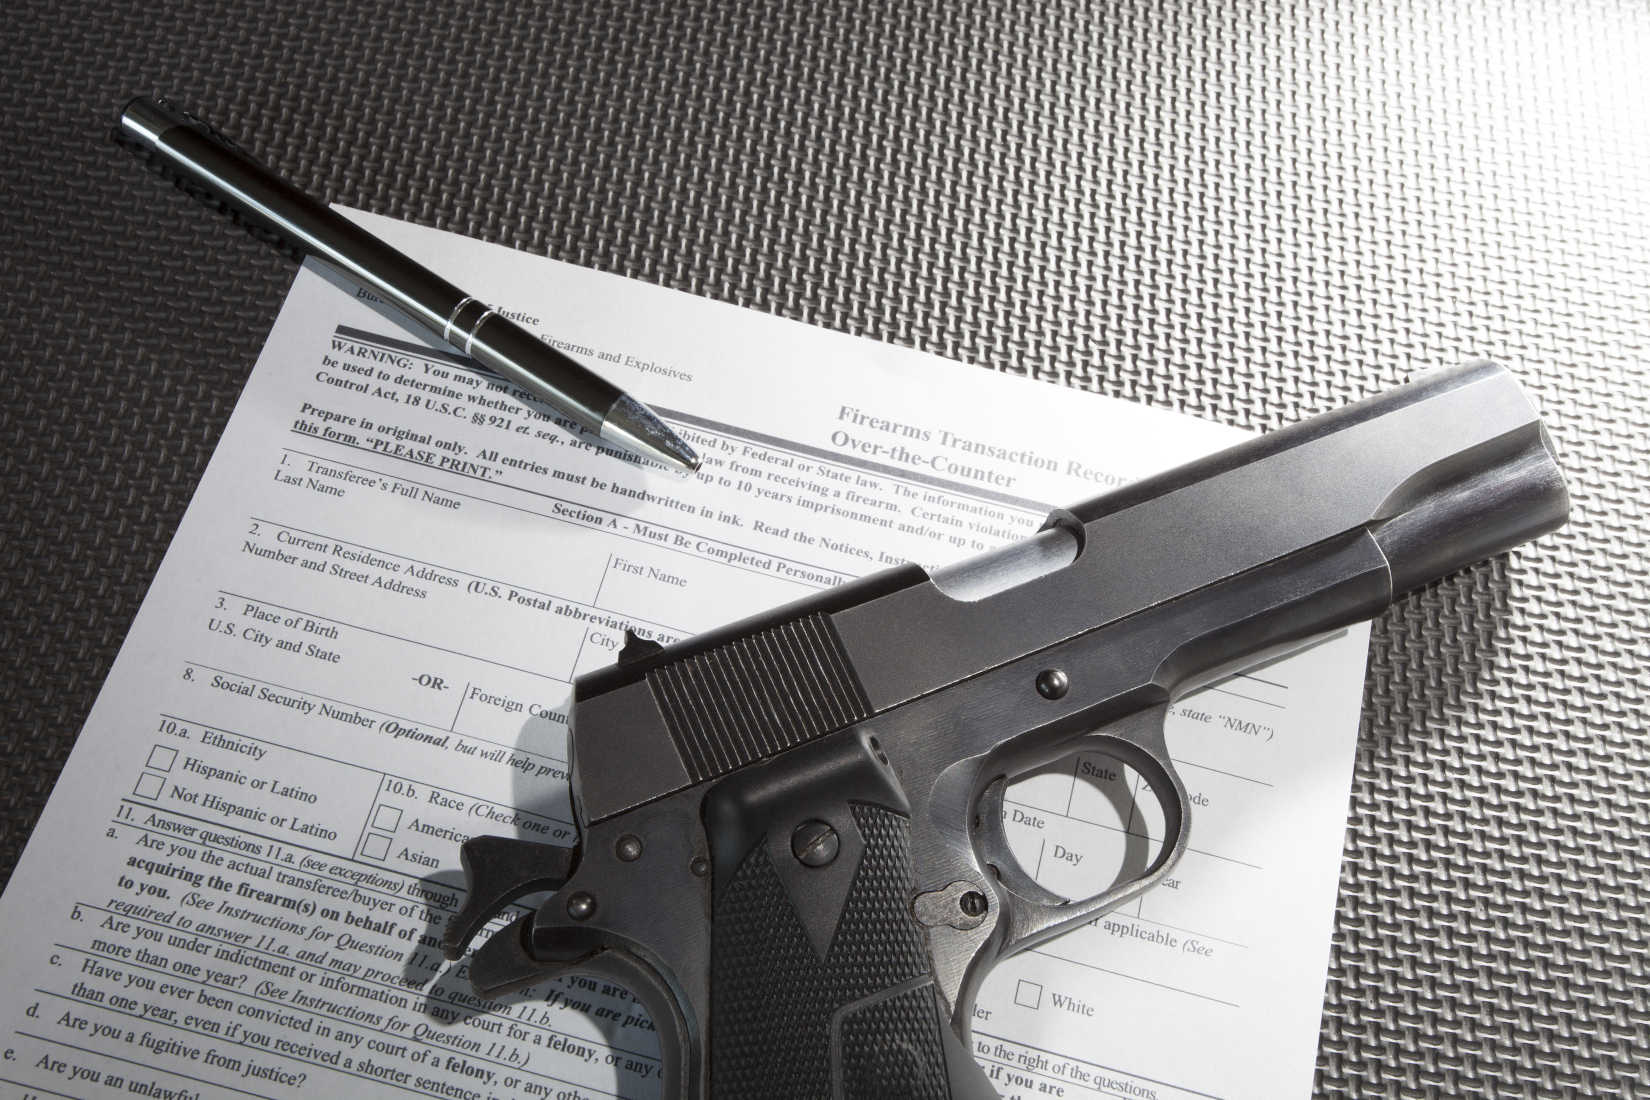 Constitutional Carry Set to Take Effect in Oklahoma